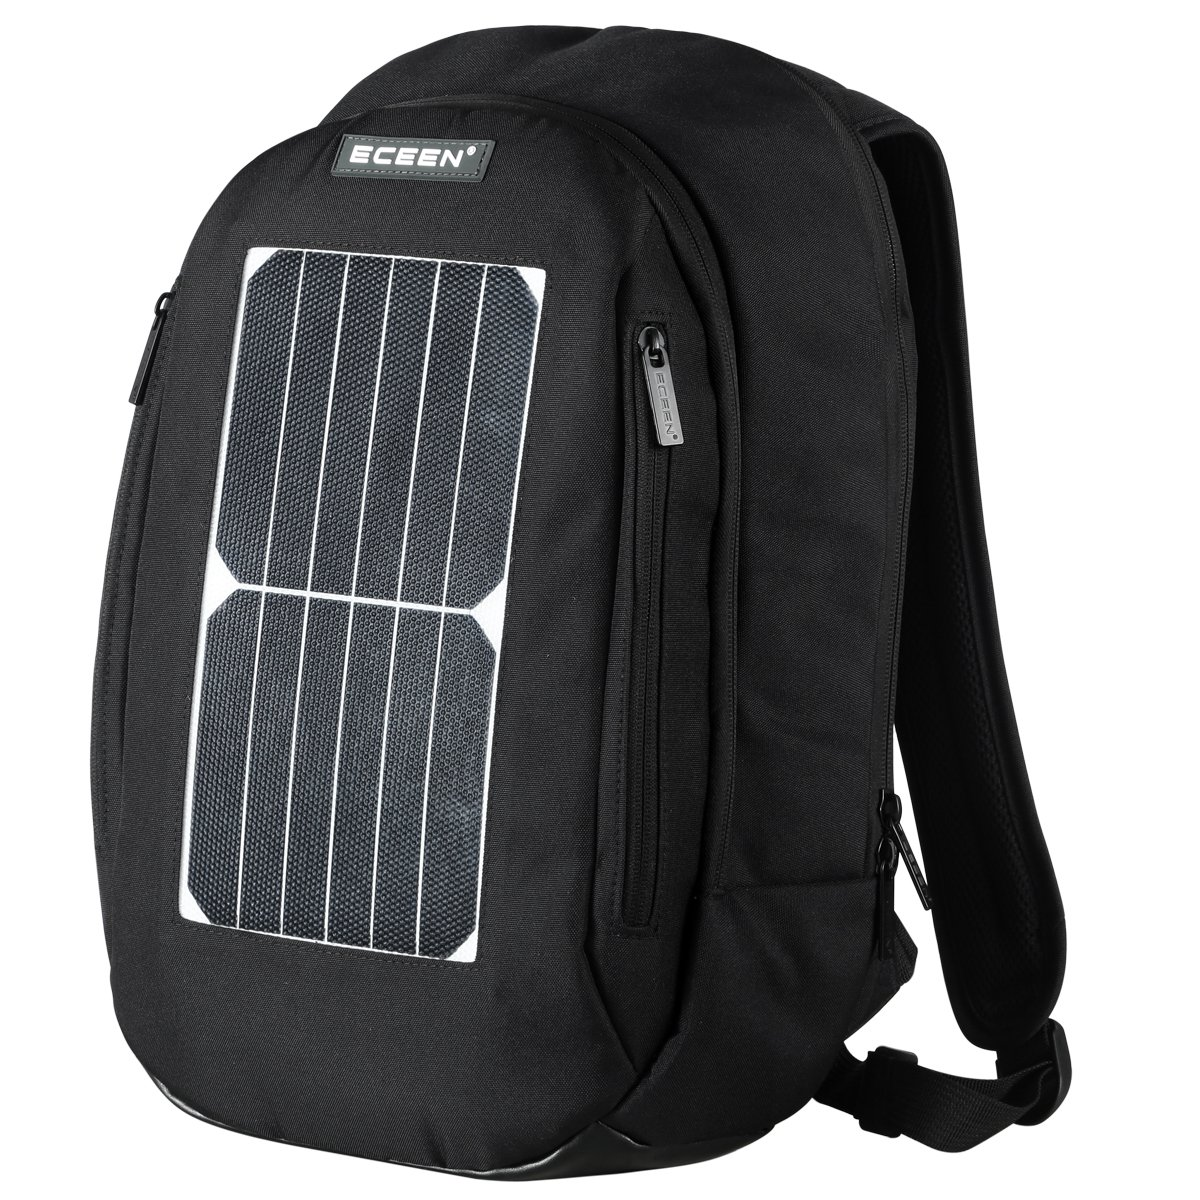 Laptop Backpack with 7W Waterproof Solar Panel Charger + 2000mAH Rechargeable Battery Pack for Phones / Holds Laptops, Macbooks and Tablets up to 14'' (Black) by ECEEN